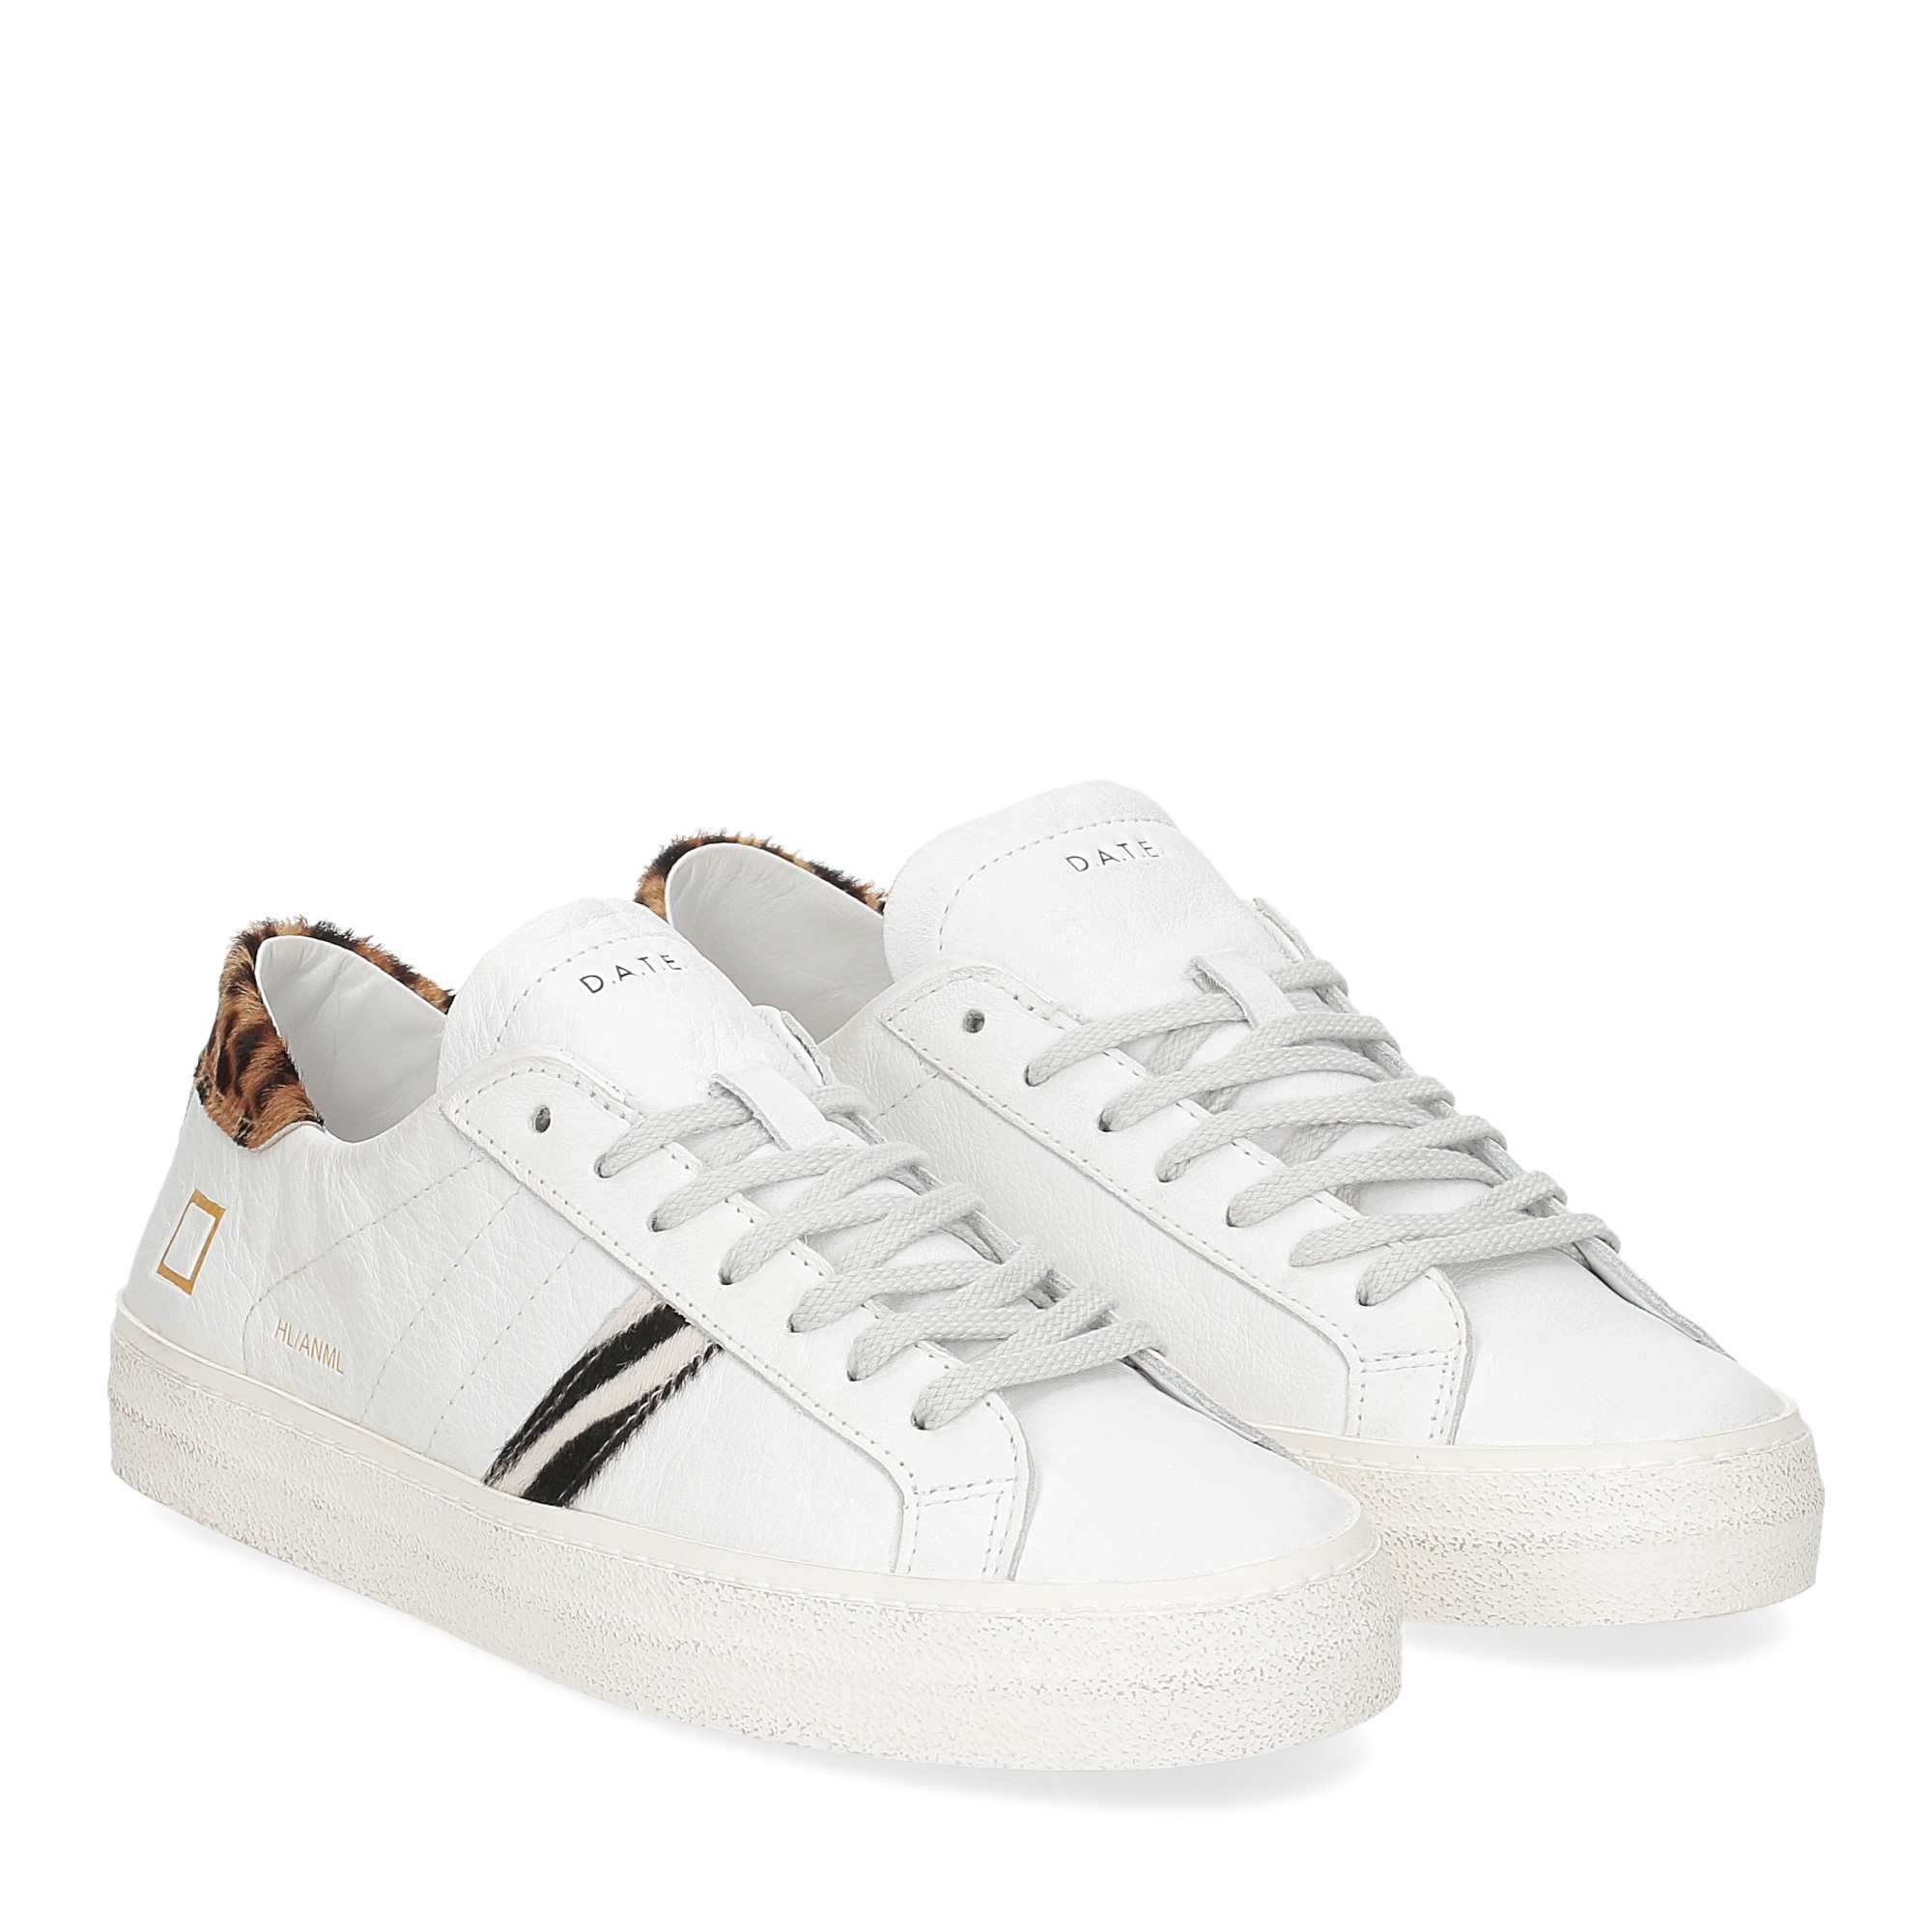 D.A.T.E. Hill Low animalier white